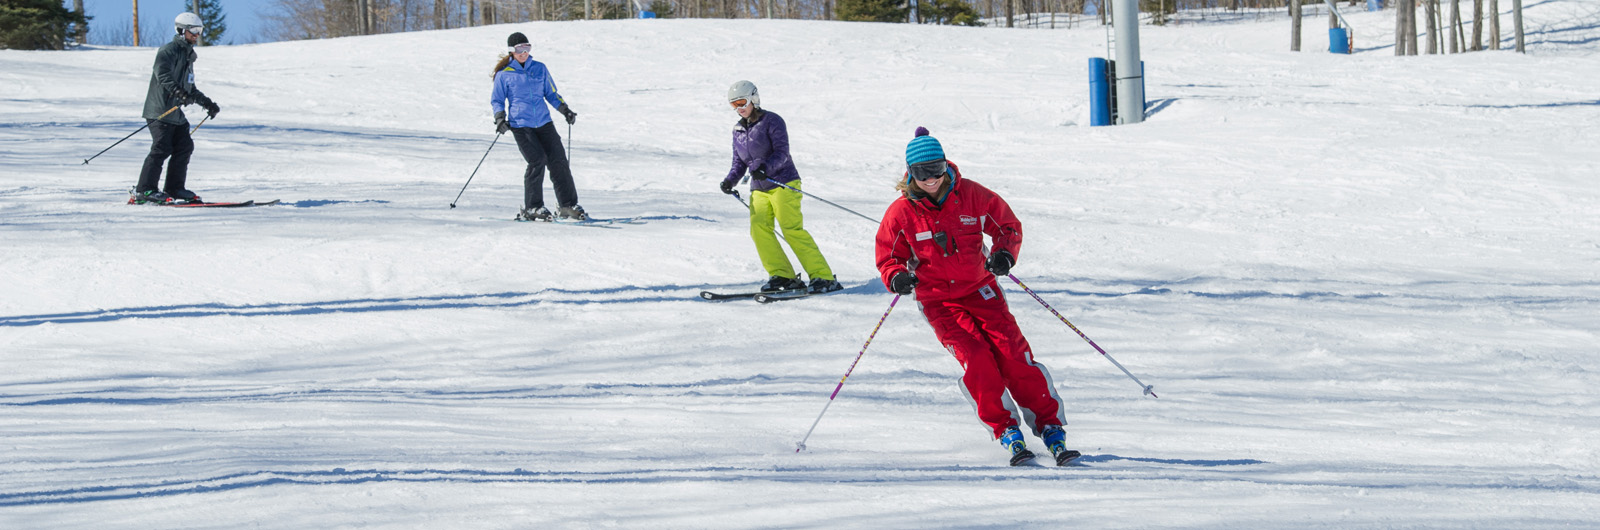 Ski Instructor leading class